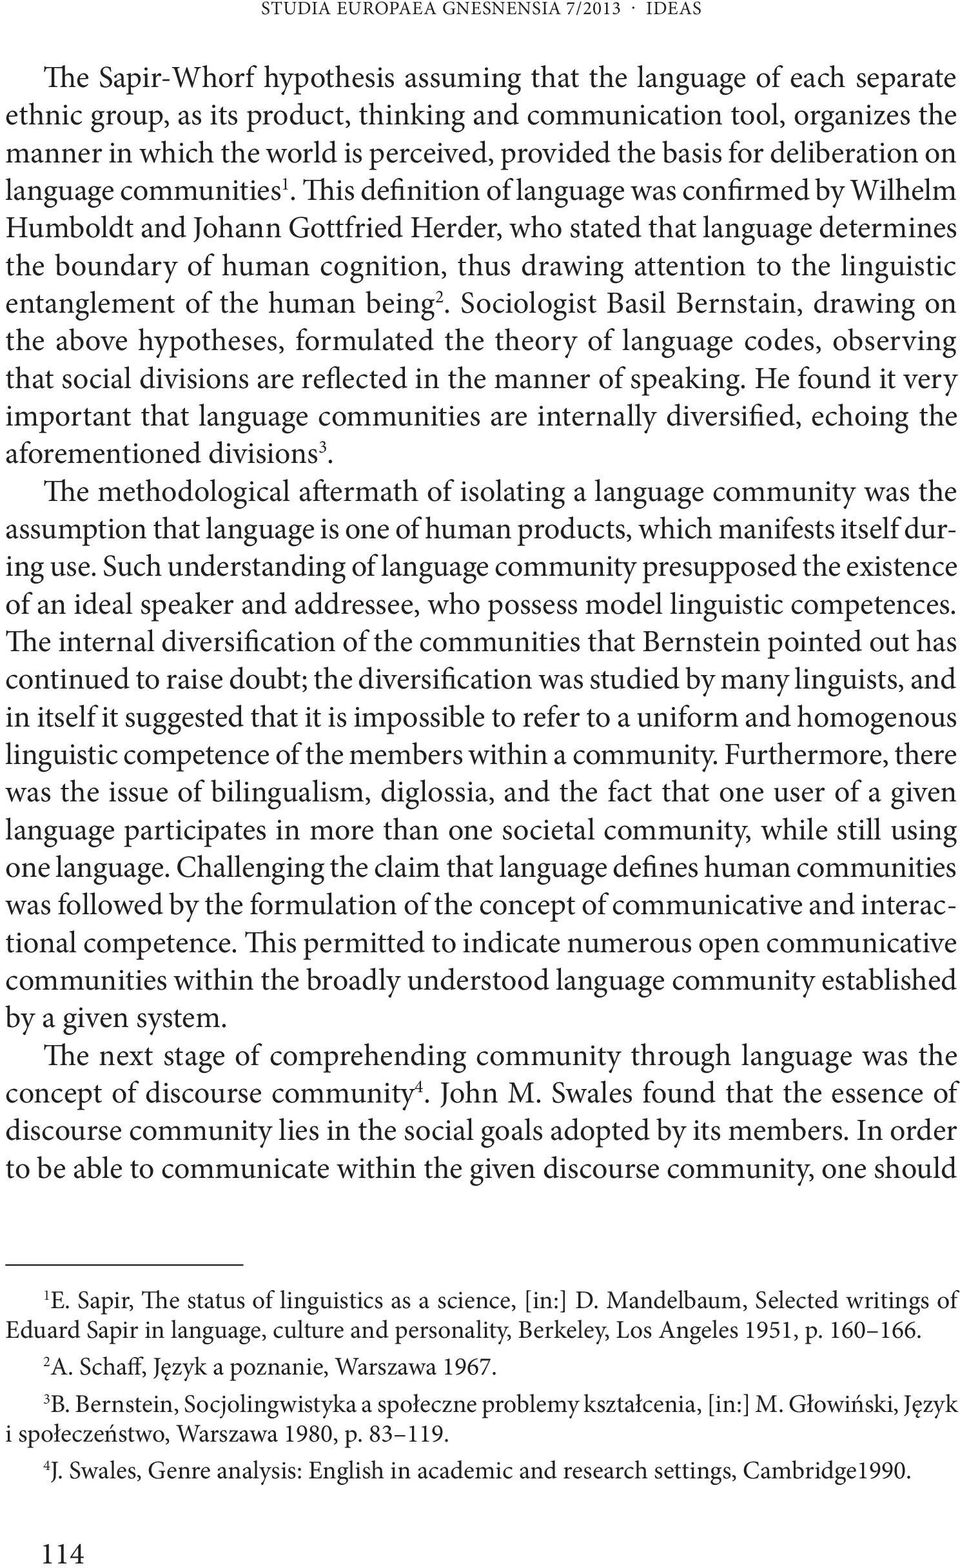 This definition of language was confirmed by Wilhelm Humboldt and Johann Gottfried Herder, who stated that language determines the boundary of human cognition, thus drawing attention to the